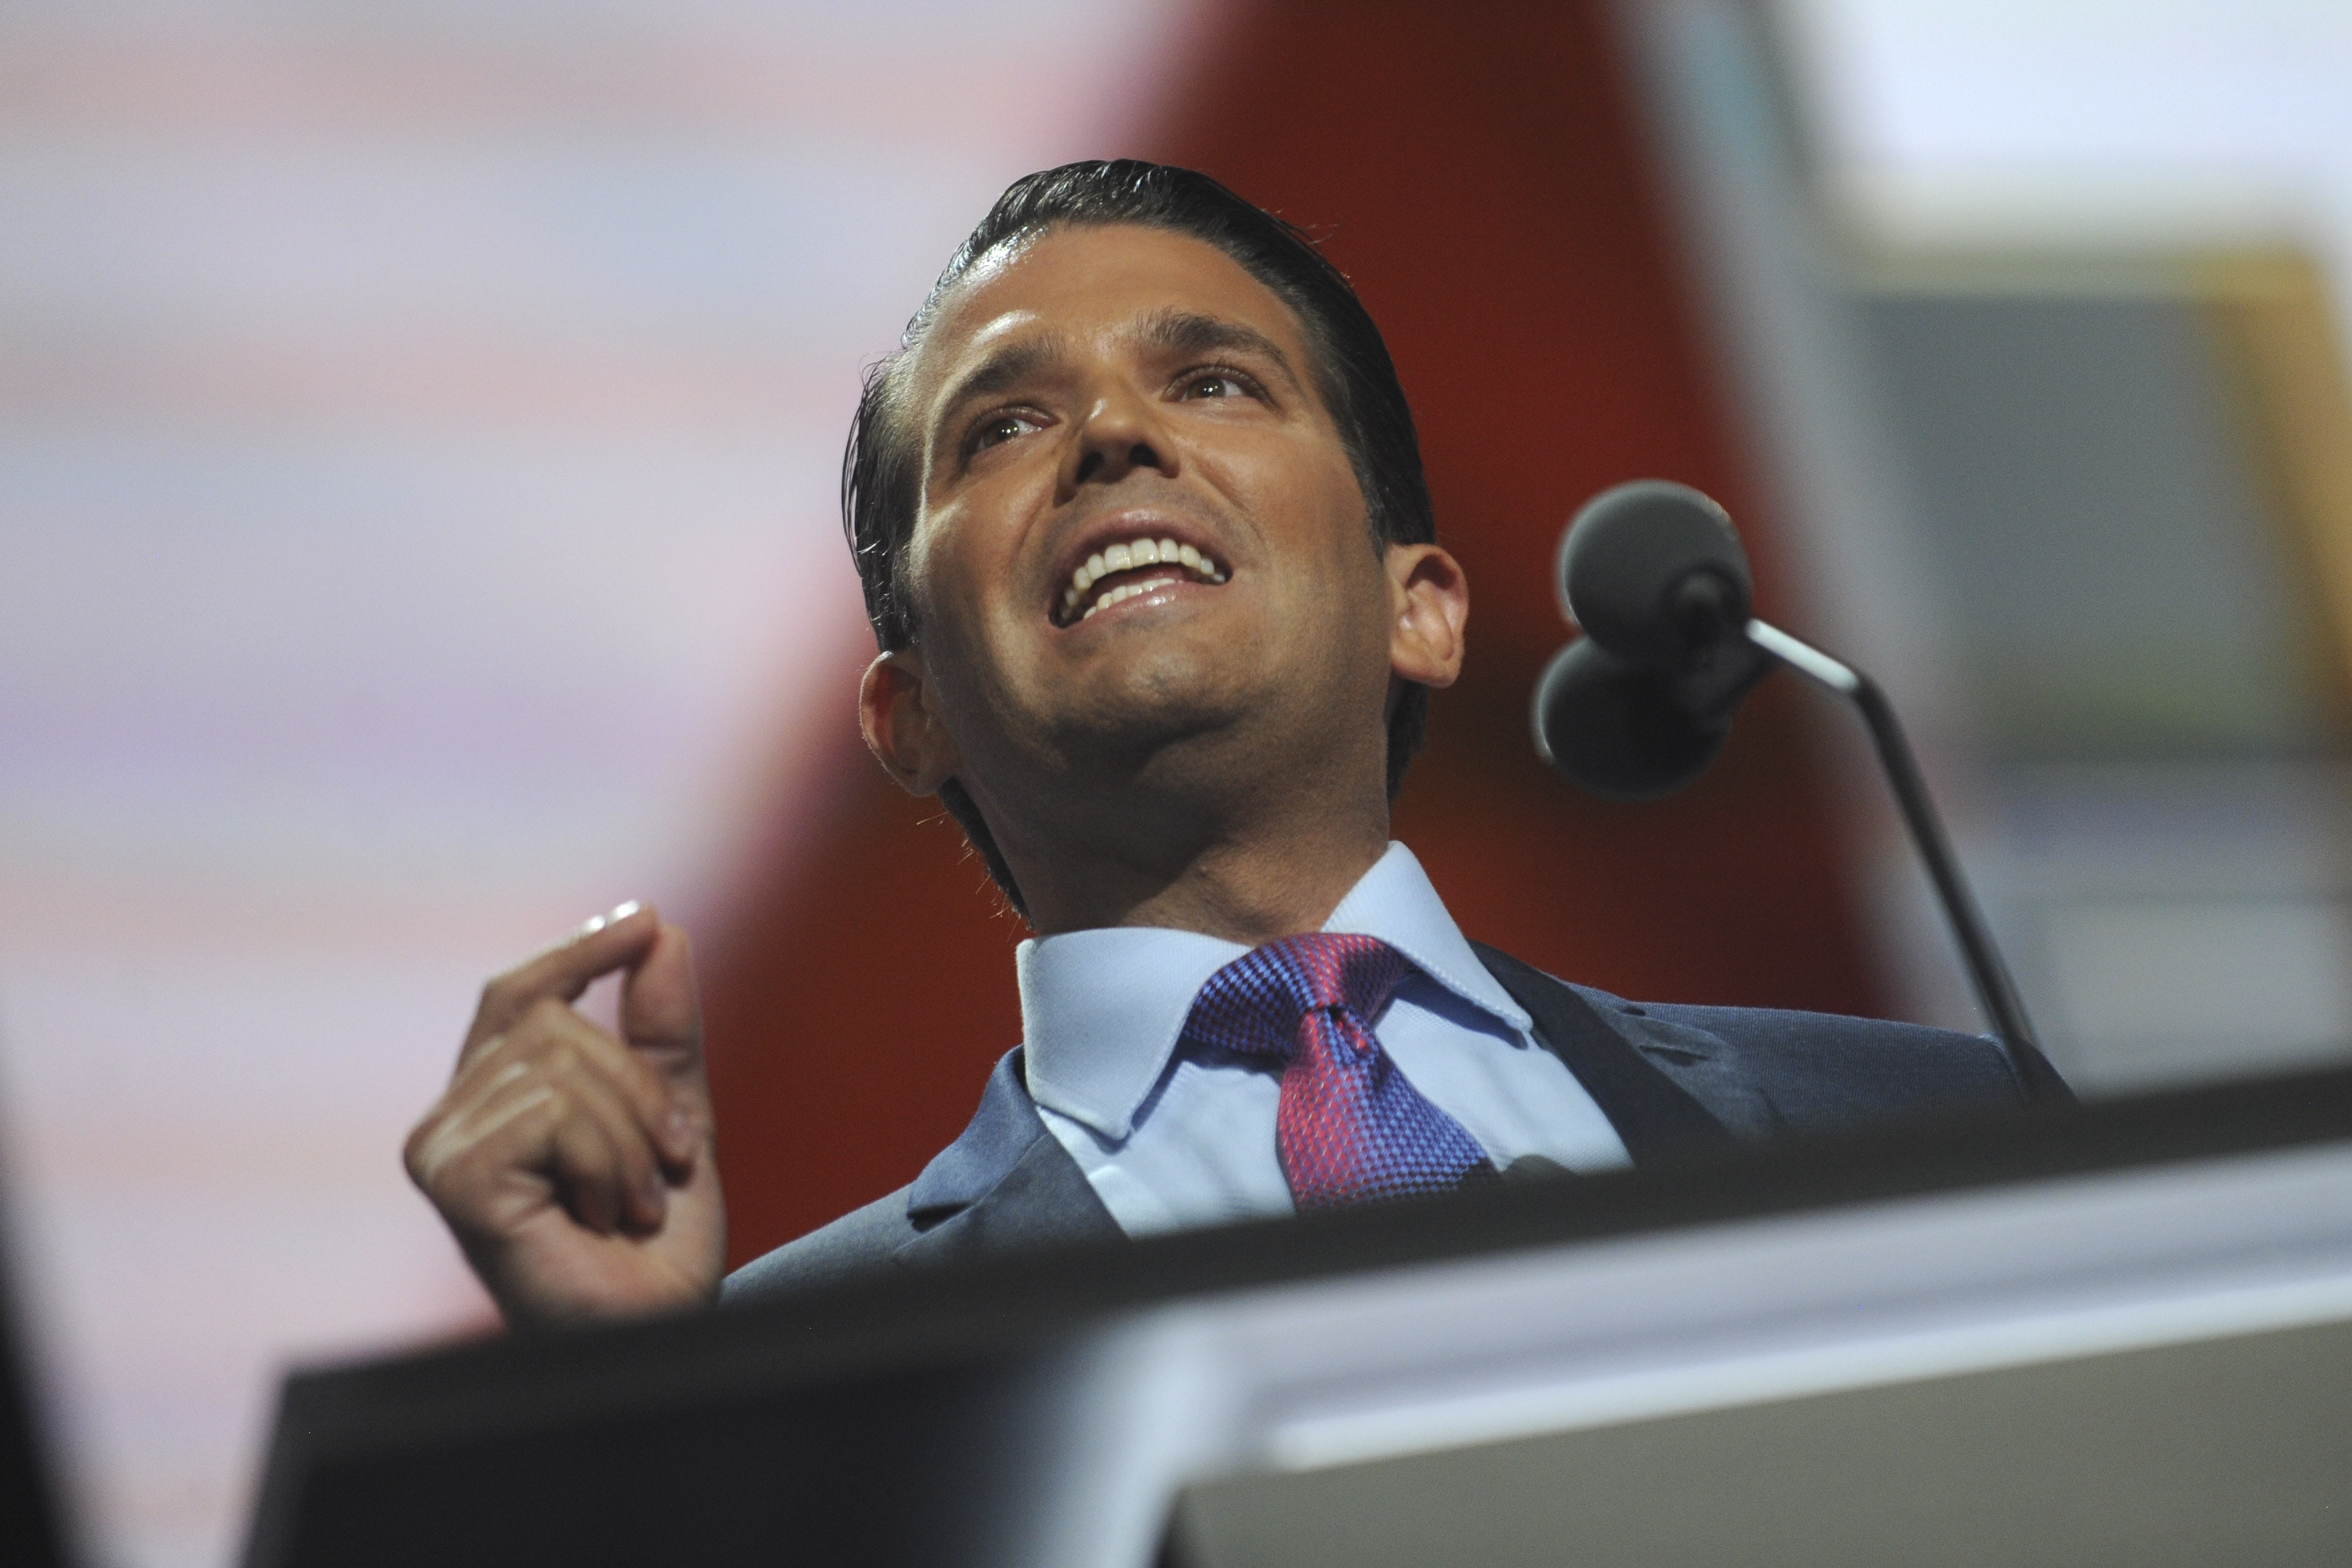 His full name is Donald John Trump Jr. (Photo: WENN)